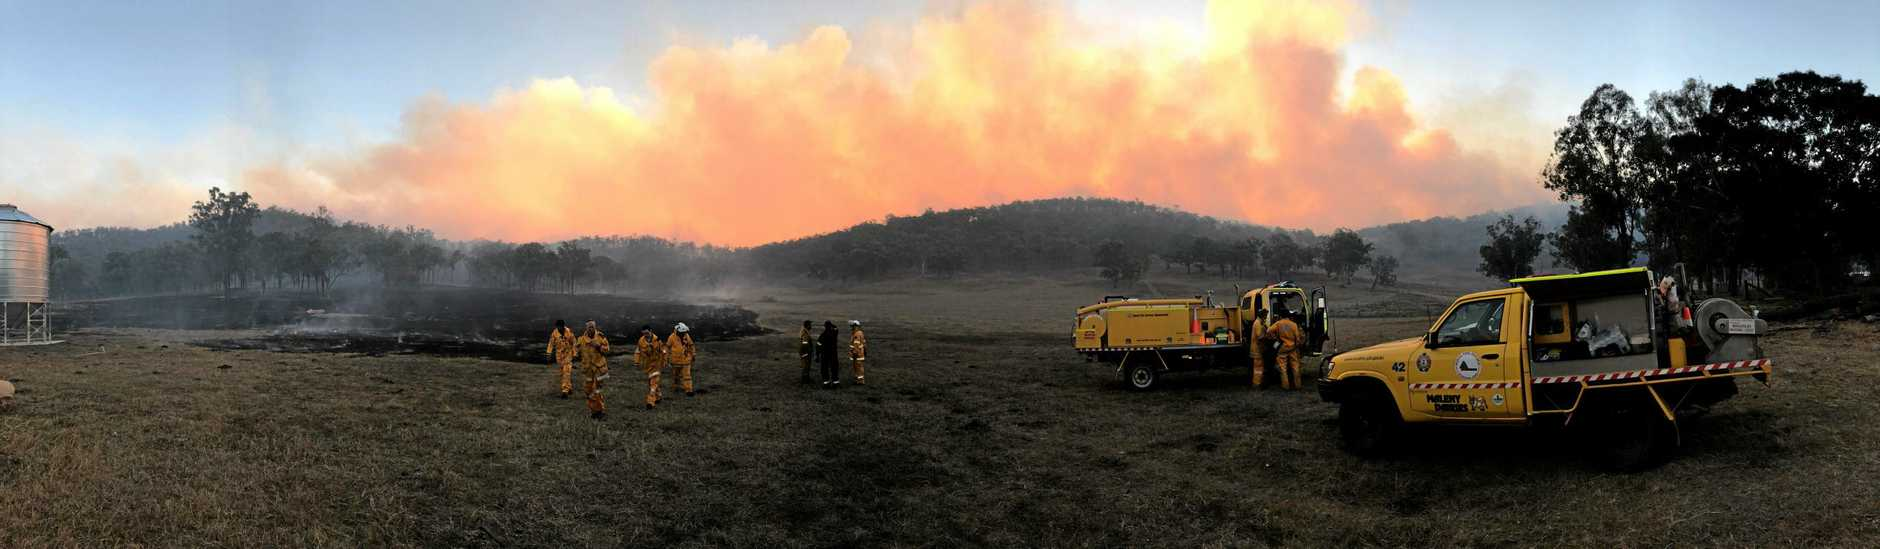 The Woolooga grass fire destroyed millions of dollars worth of fencing, cattle yards and water tanks overnight leaving cattle burned and volunteer rural brigades exhausted.